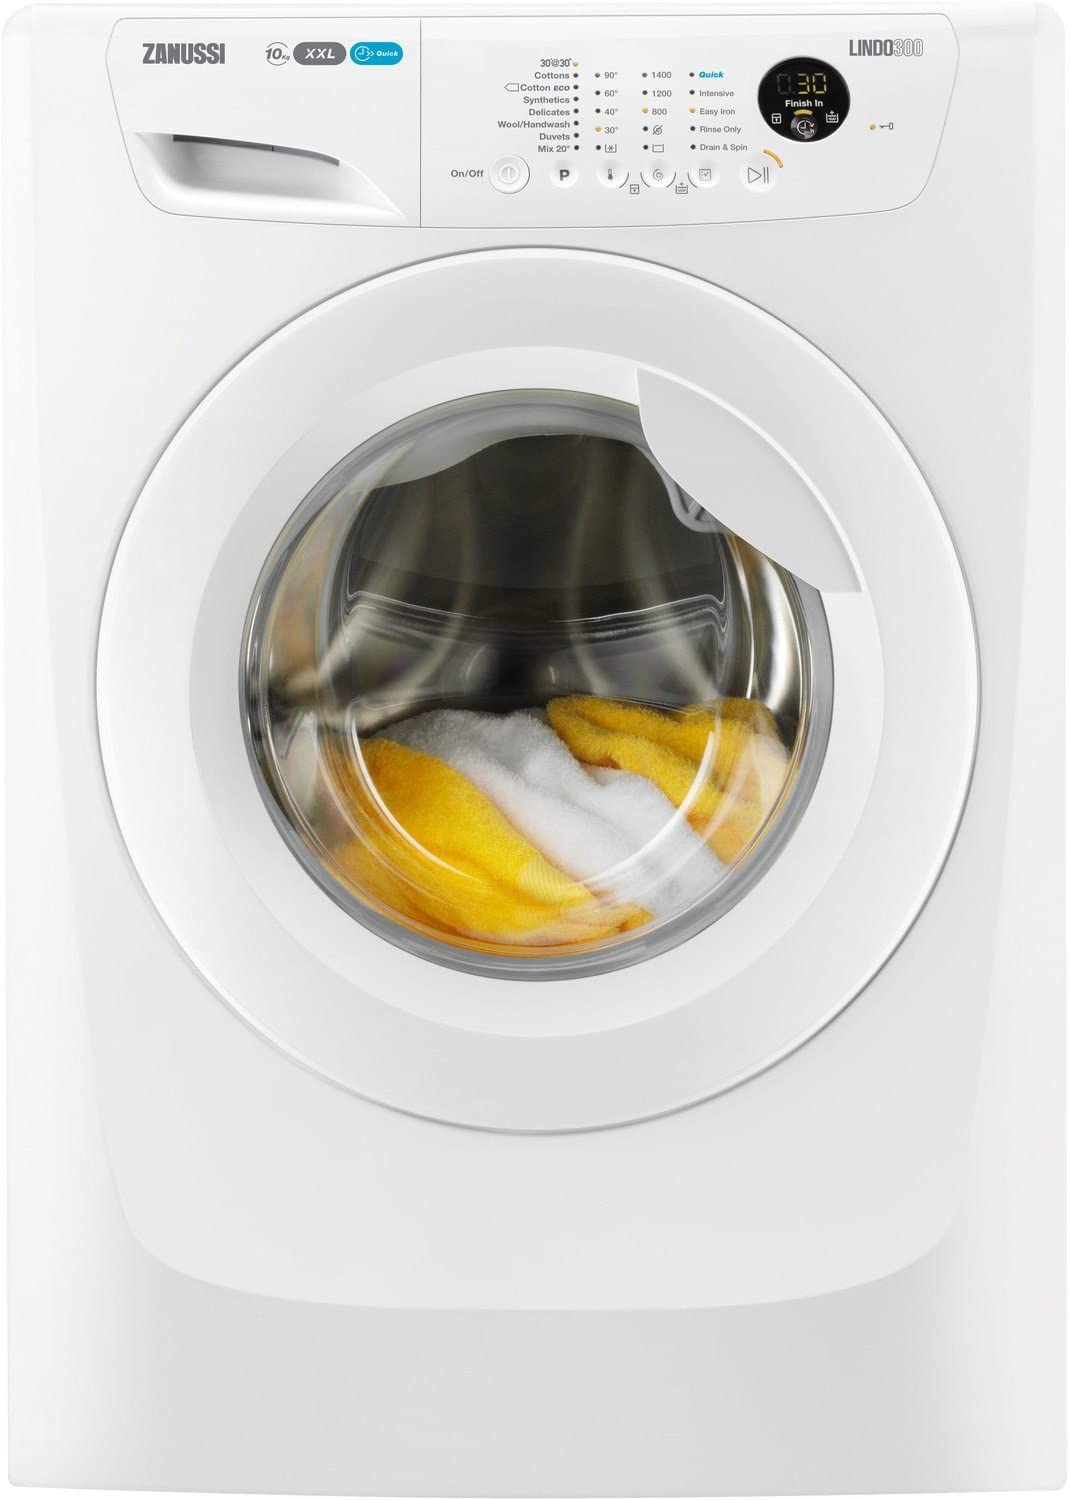 Zanussi LINDO300 Independiente Carga frontal 10kg 1400RPM A+++ Blanco - Lavadora (Independiente, Car